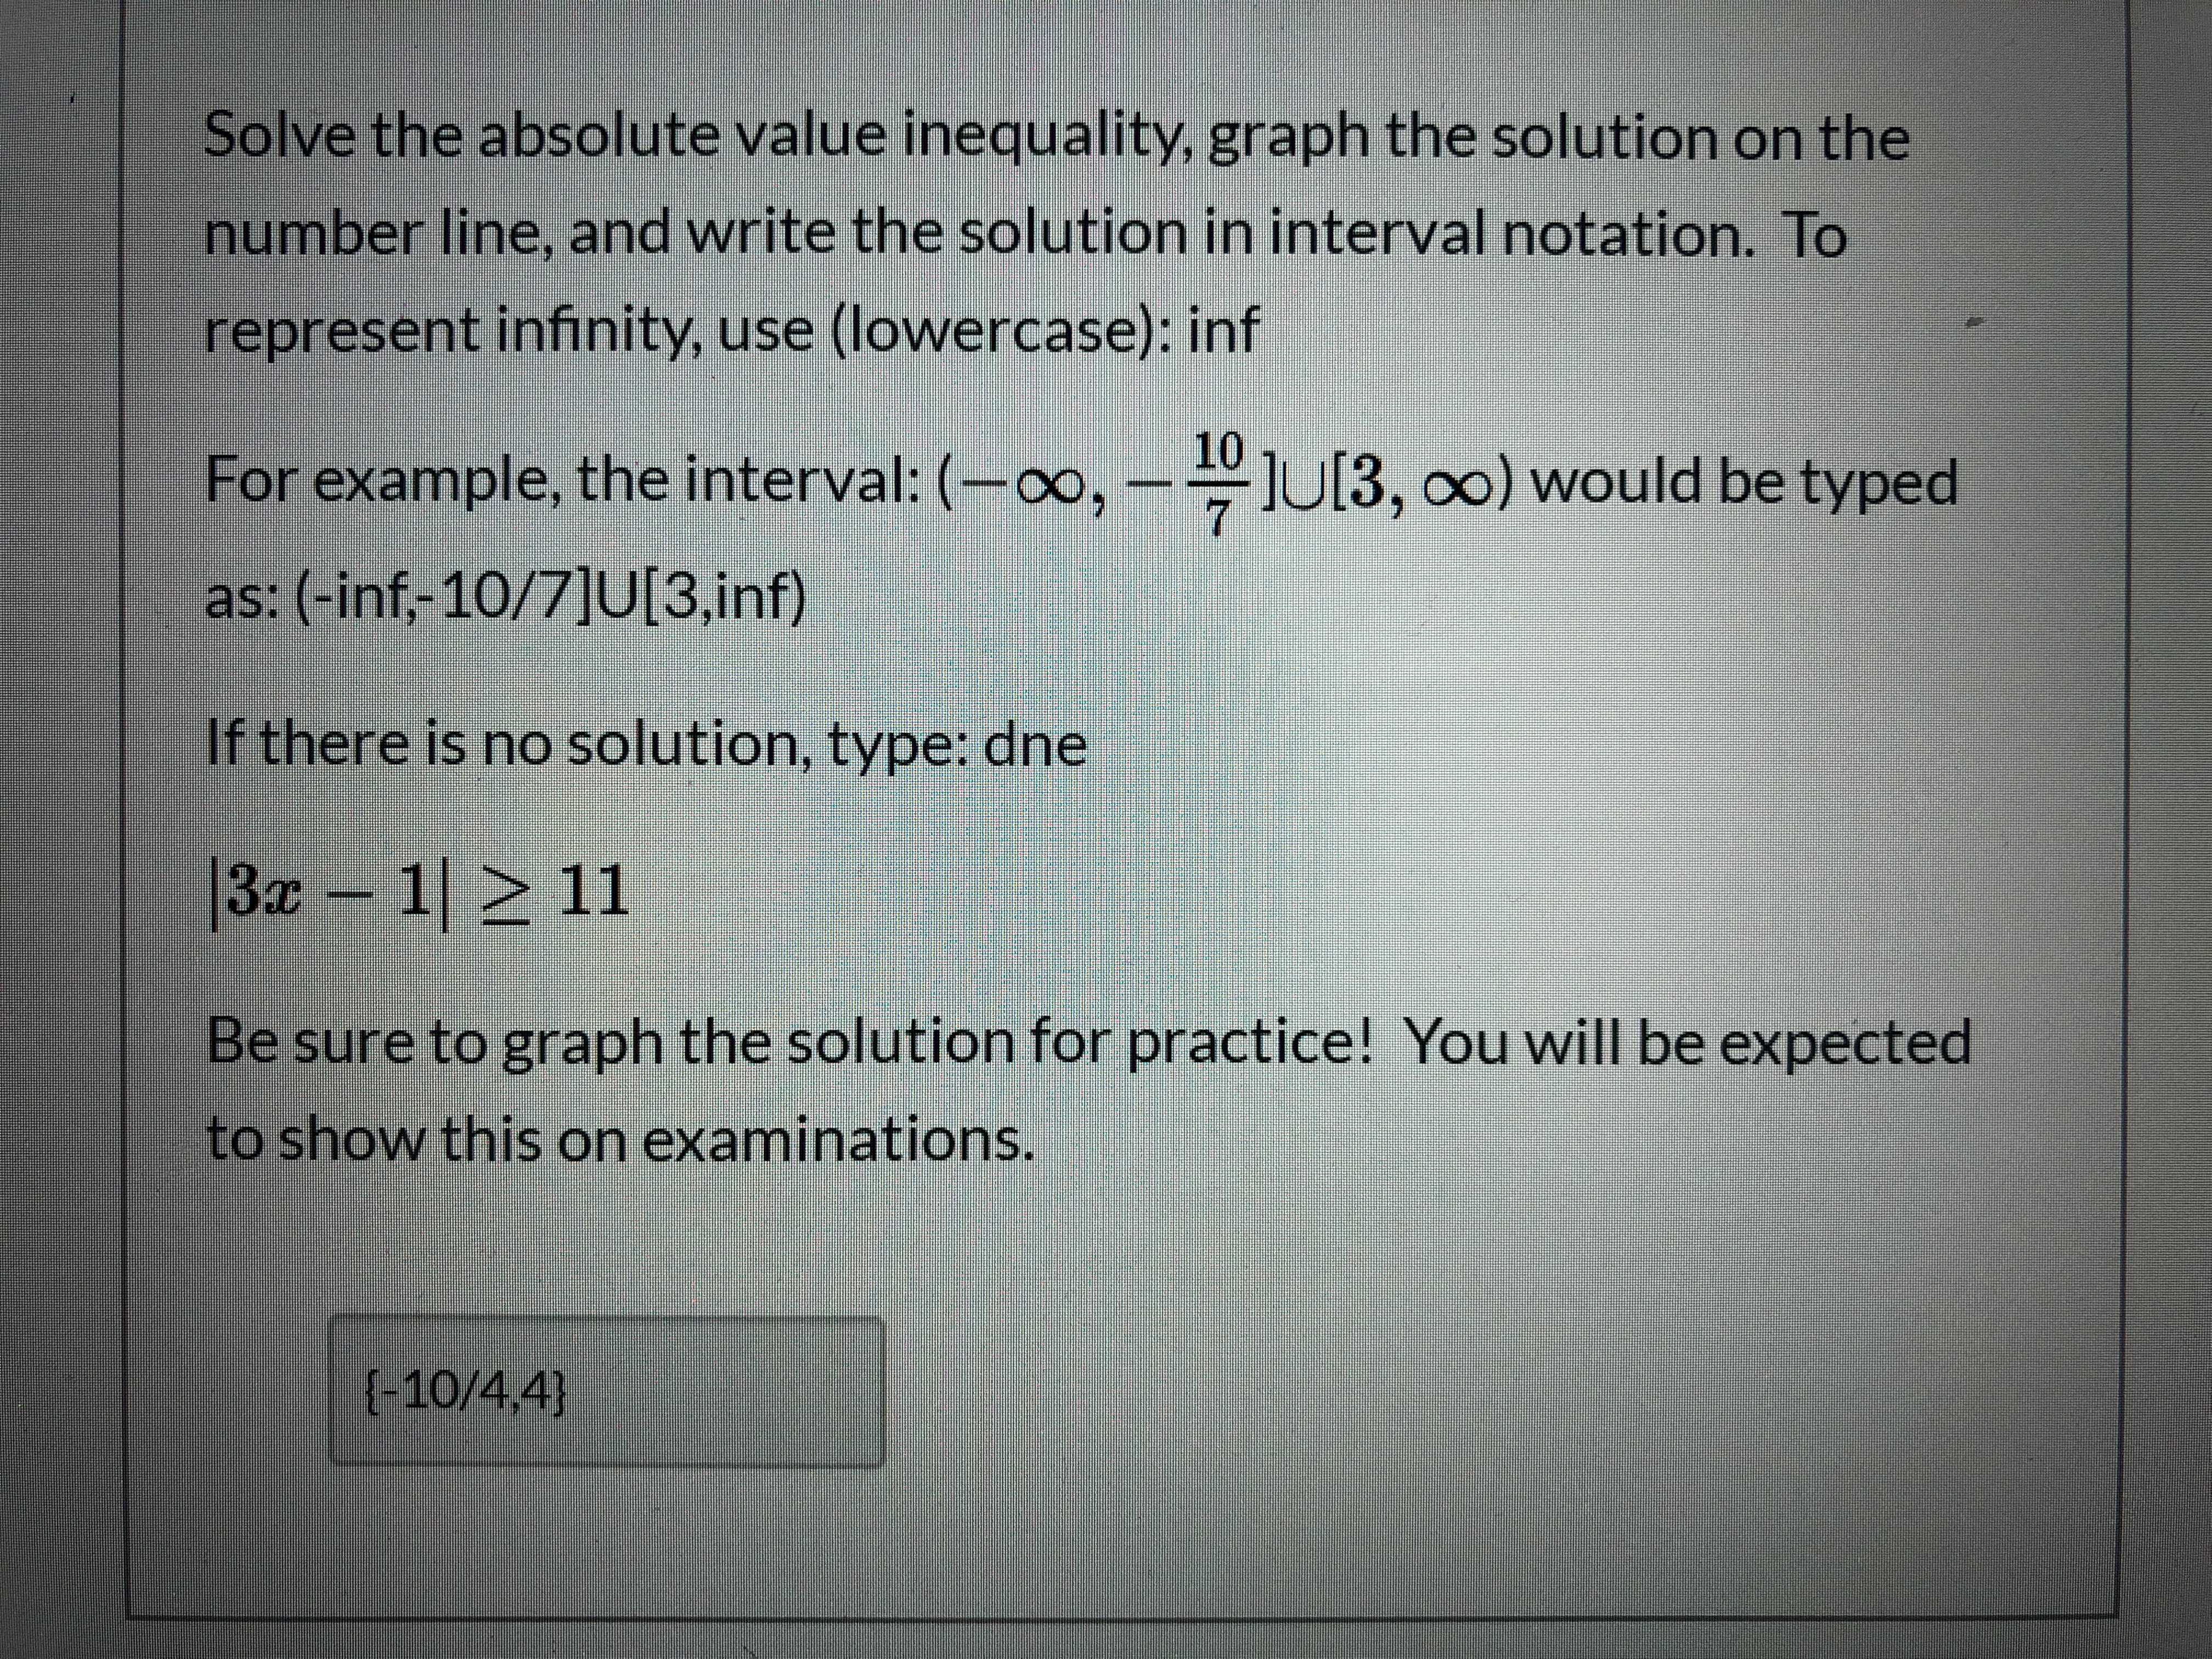 Solve the absolute value inequality, graph the solution on the number line, and write the solution in interval notation. To represent infinity, use (lowercase): inf 10 For example, the interval: (-∞, –-U[3, o0) would be typed as: (-inf,-10/7]U[3,inf) If there is no solution, type: dne  3z 1 > 11 Be sure to graph the solution for practice! You will be expected to show this on examinations. {-10/4,4}